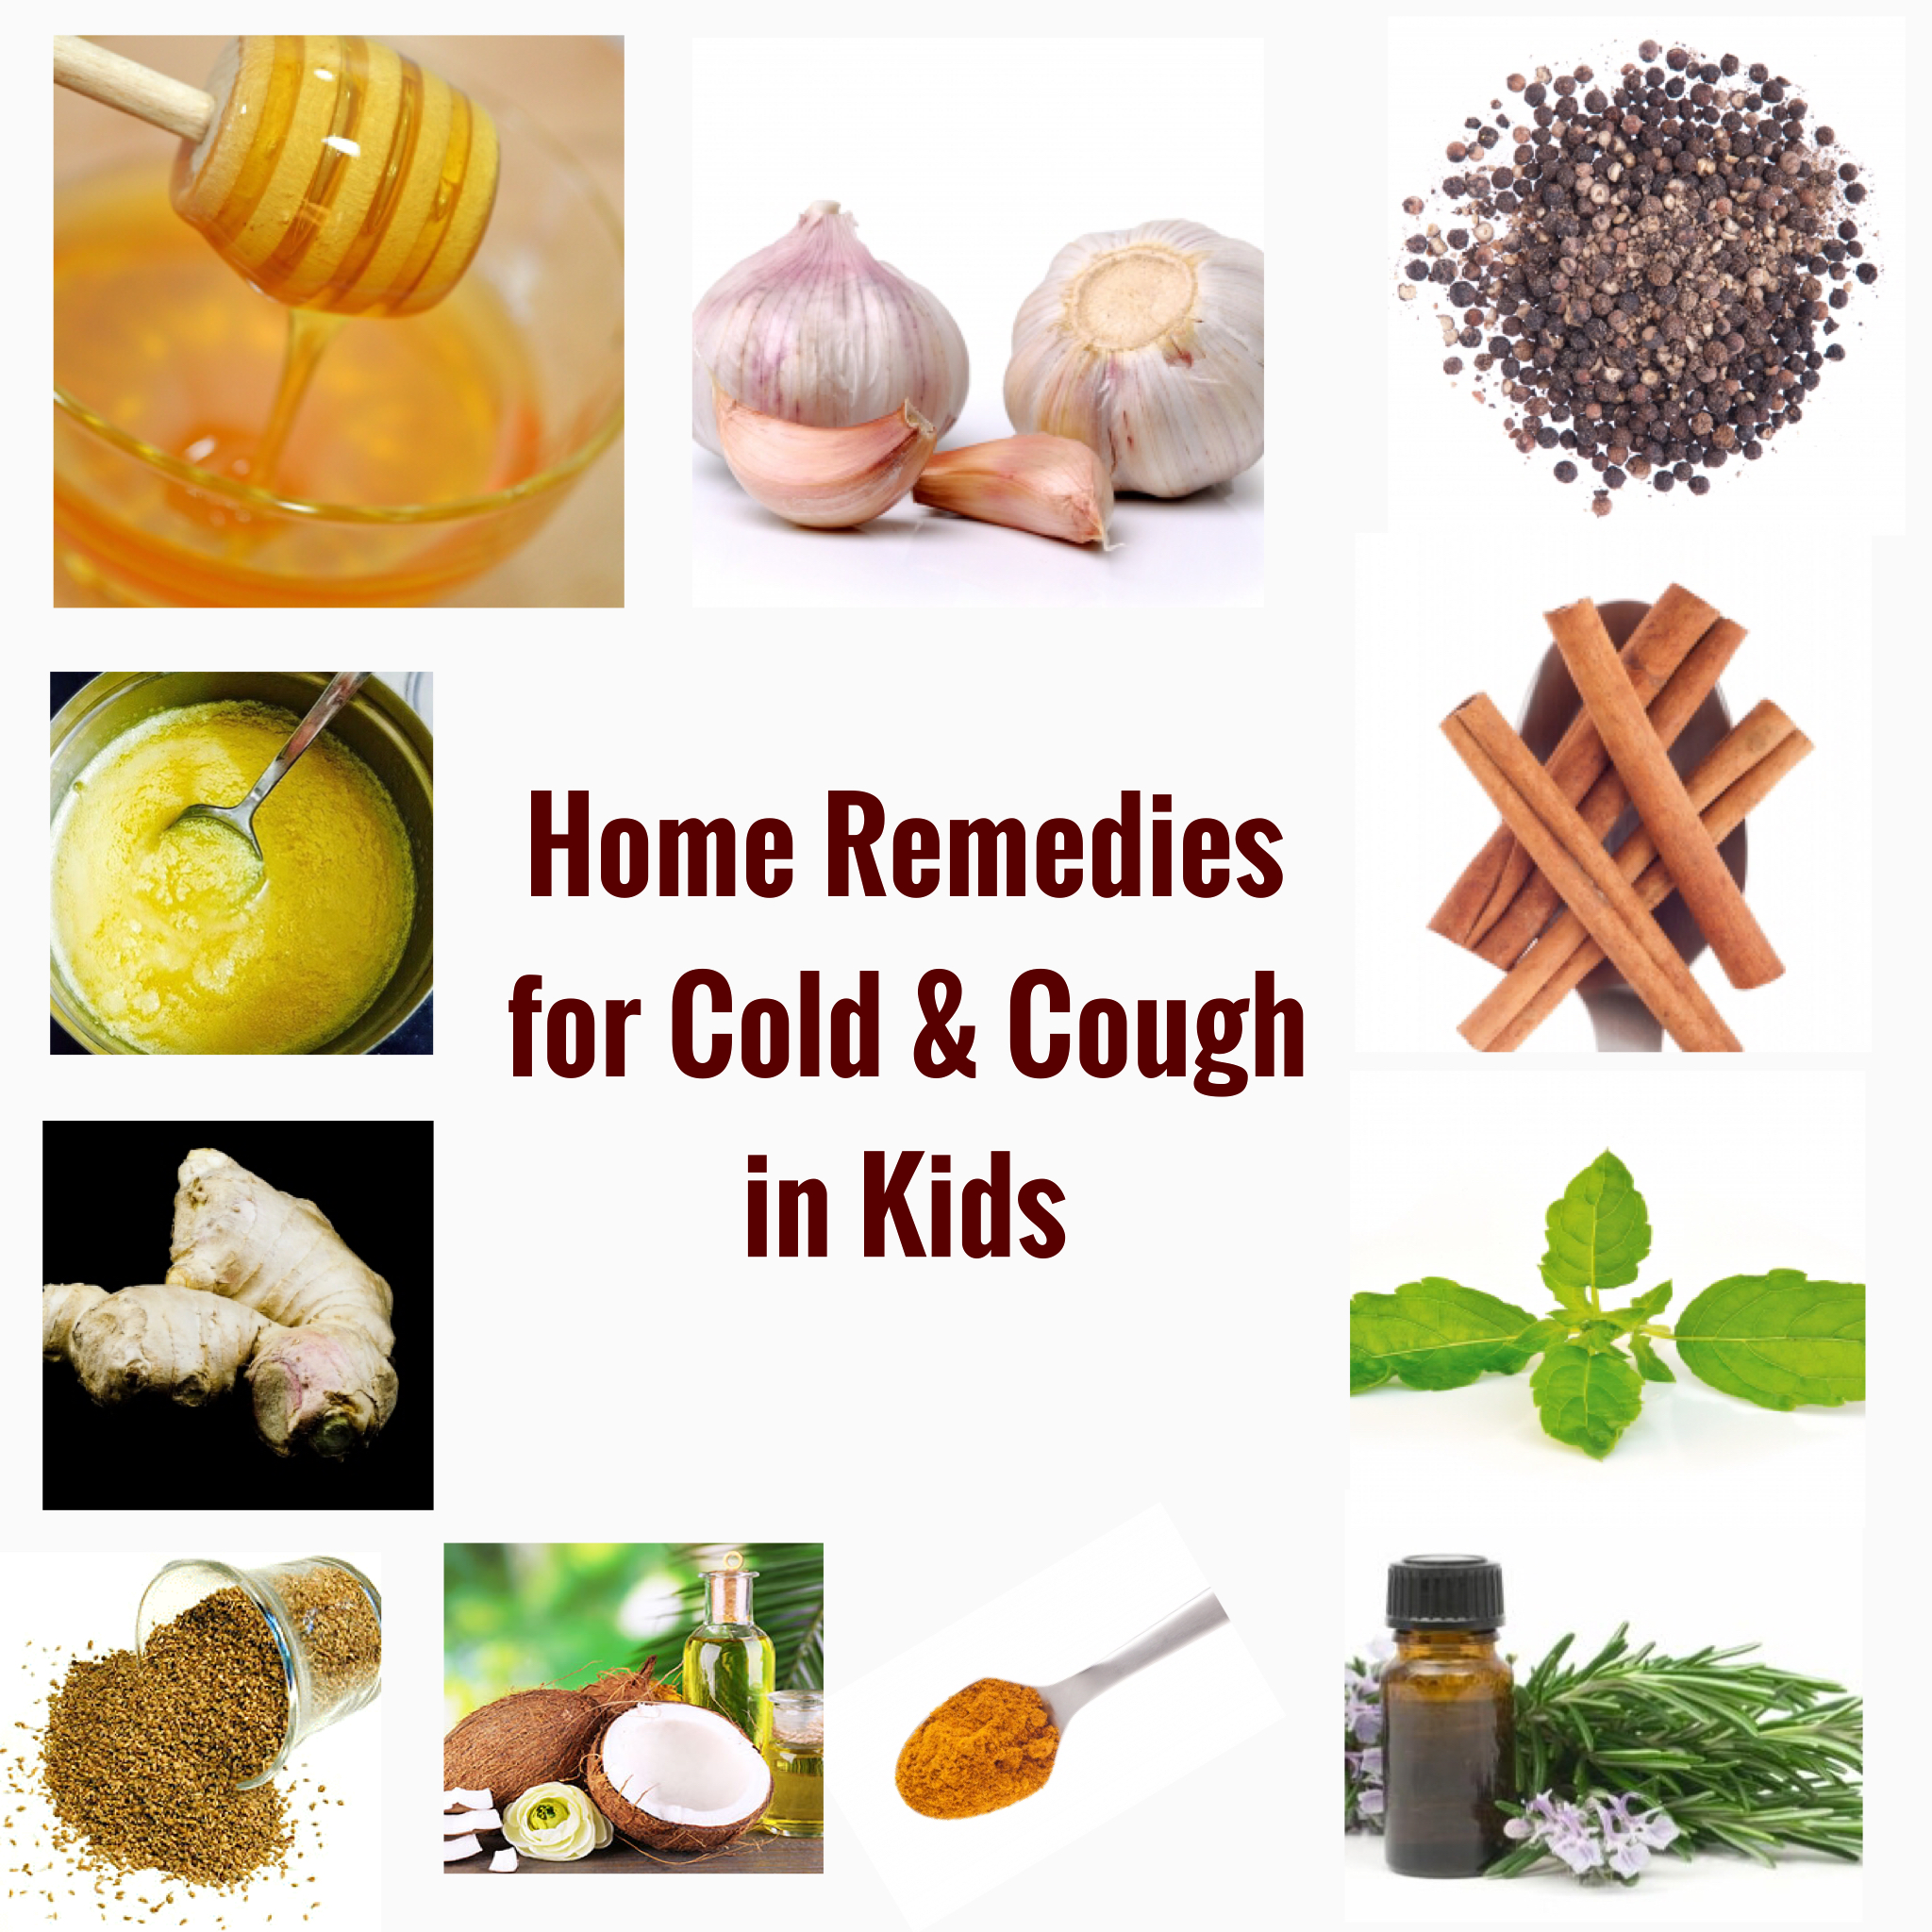 Home remedies for Cold & Cough in Kids